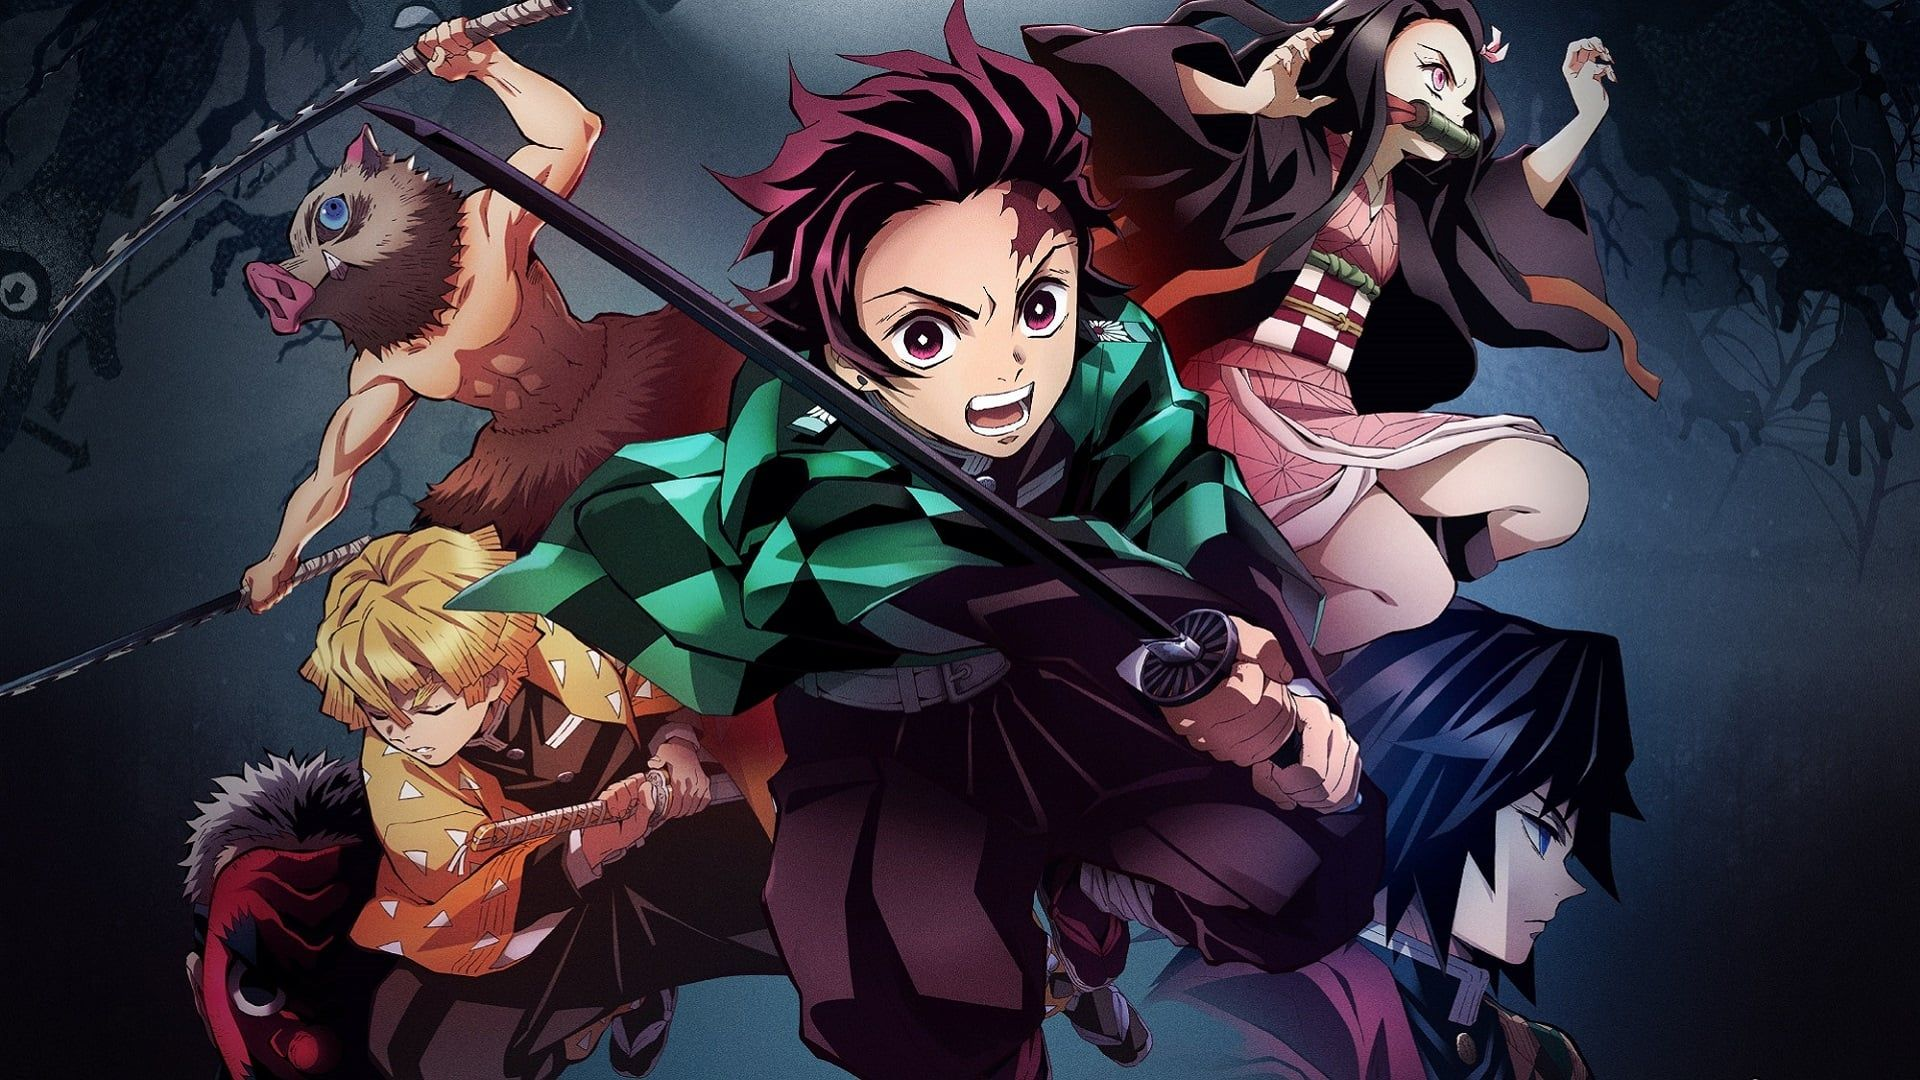 Demon Slayer Kimetsu no Yaiba Chapter 205 Release Date, Raw Scans and Read Online